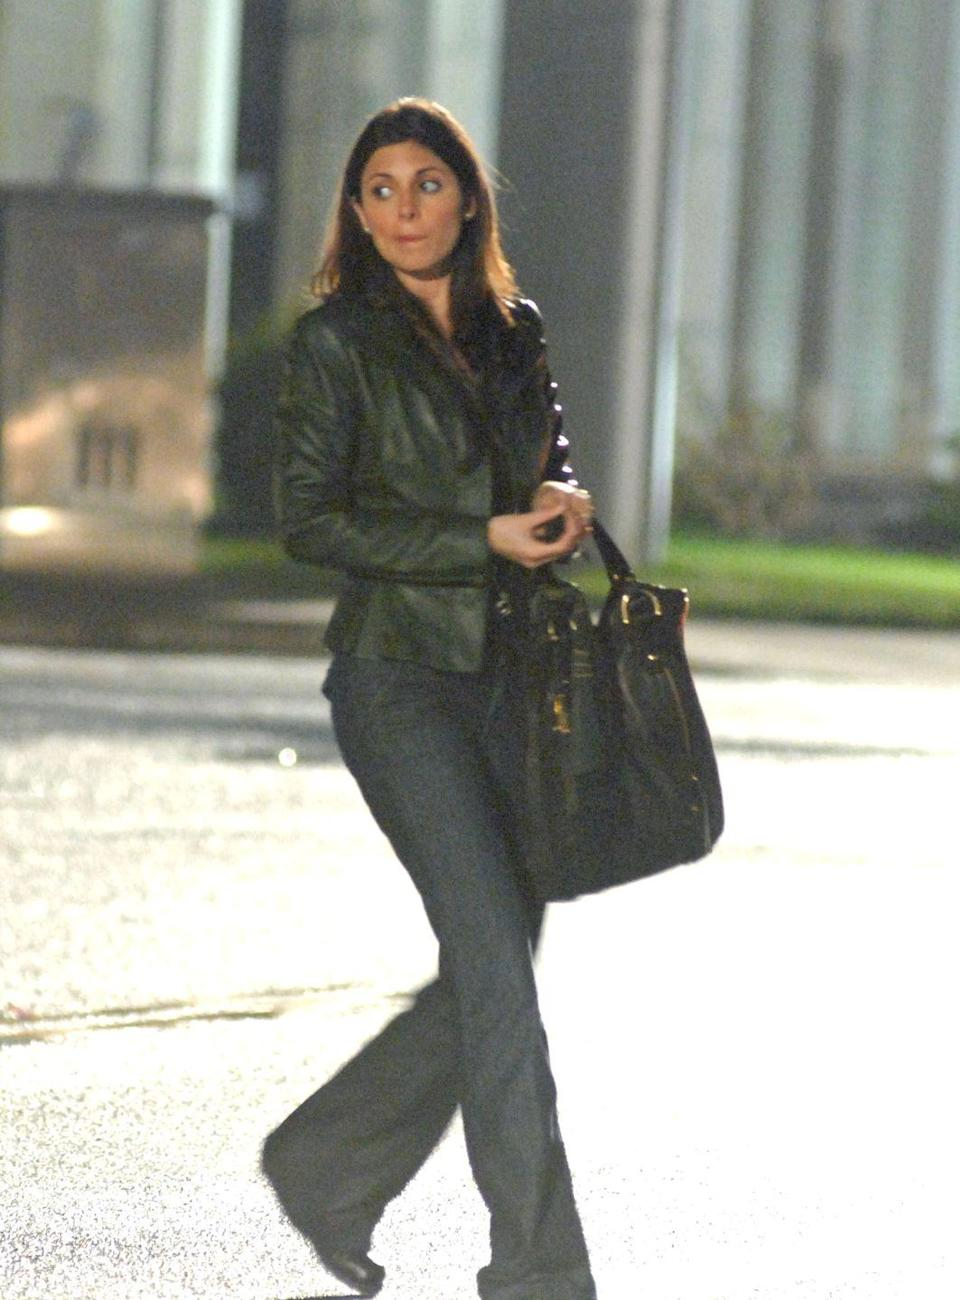 """<p>Jamie-Lynn Sigler films her last scene for the series outside of Holsten's. After the finale aired, she suggested Meadow Soprano might be headed to mob life. """"The ending was, you know, a turn. It seems the best theory, I mean, she's talking about how she doesn't like how Italian Americans are treated,"""" she told <a href=""""https://www.vulture.com/2007/06/the_sopranos_cast_watches_the.html"""" rel=""""nofollow noopener"""" target=""""_blank"""" data-ylk=""""slk:Vulture"""" class=""""link rapid-noclick-resp"""">Vulture</a>.</p>"""